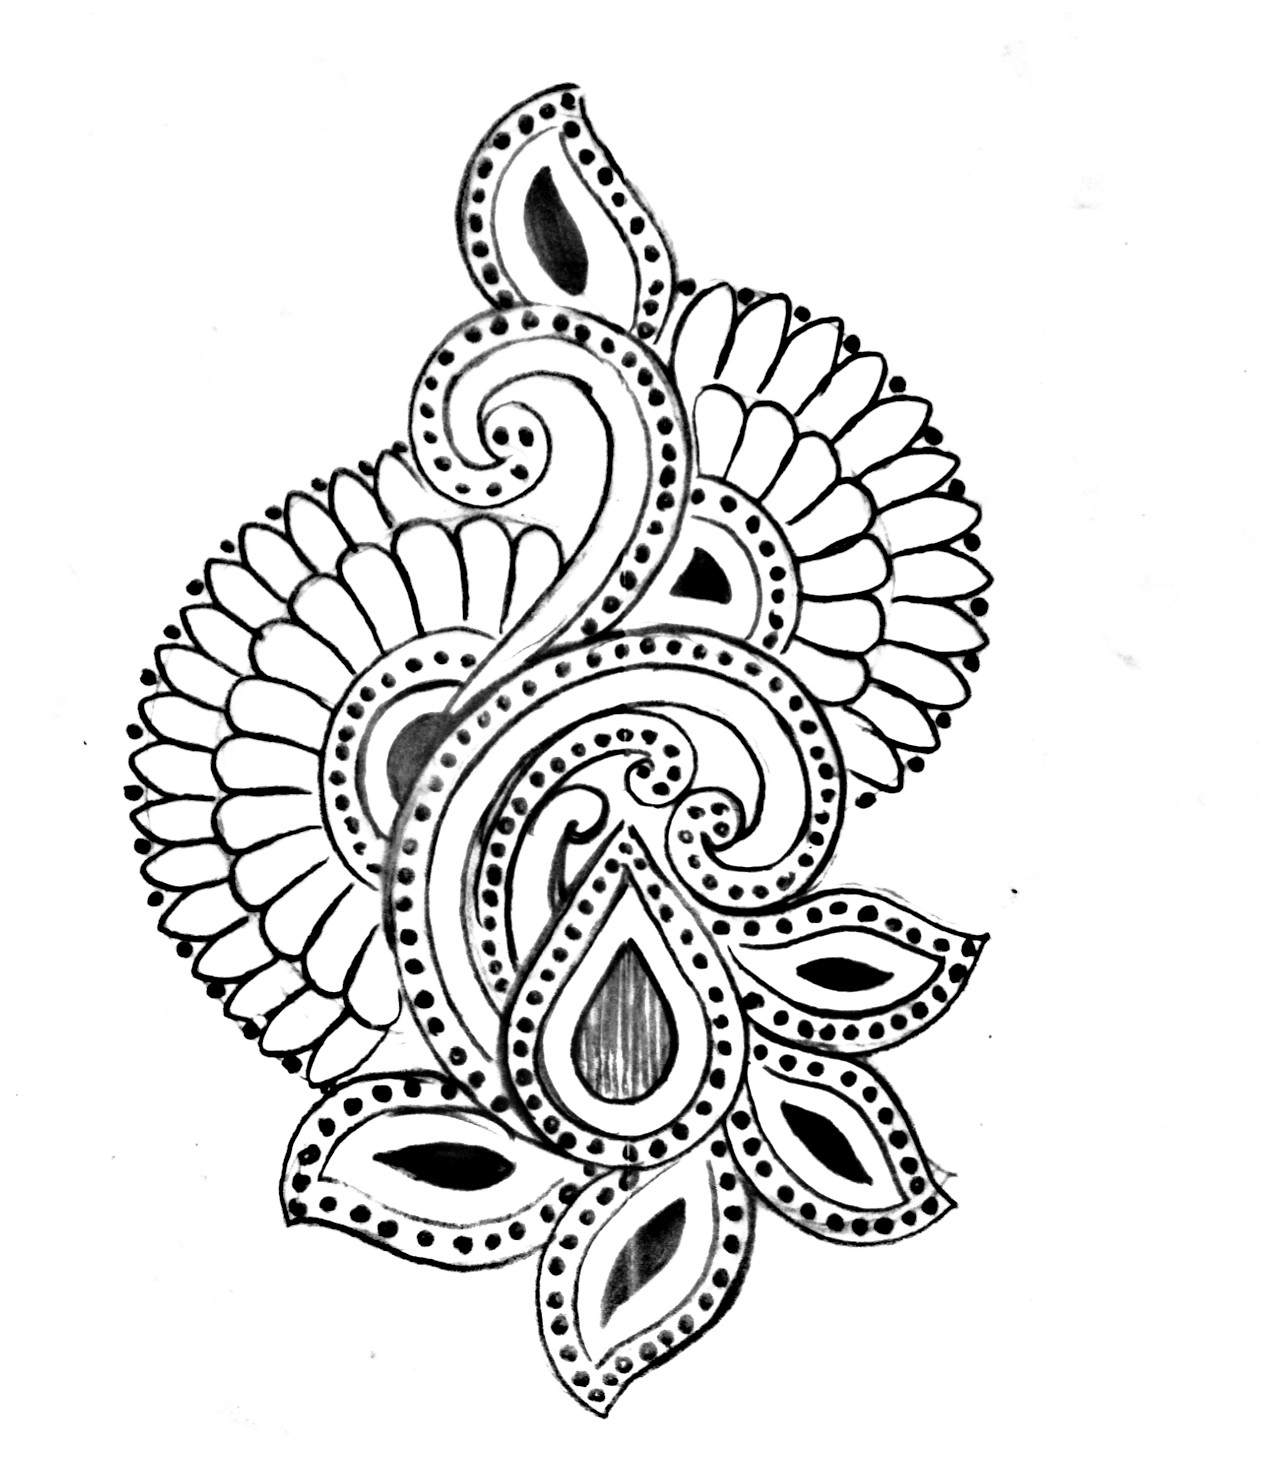 Hand embroidery designs sketches/embroidery pencil sketch/emroidery designs images free download